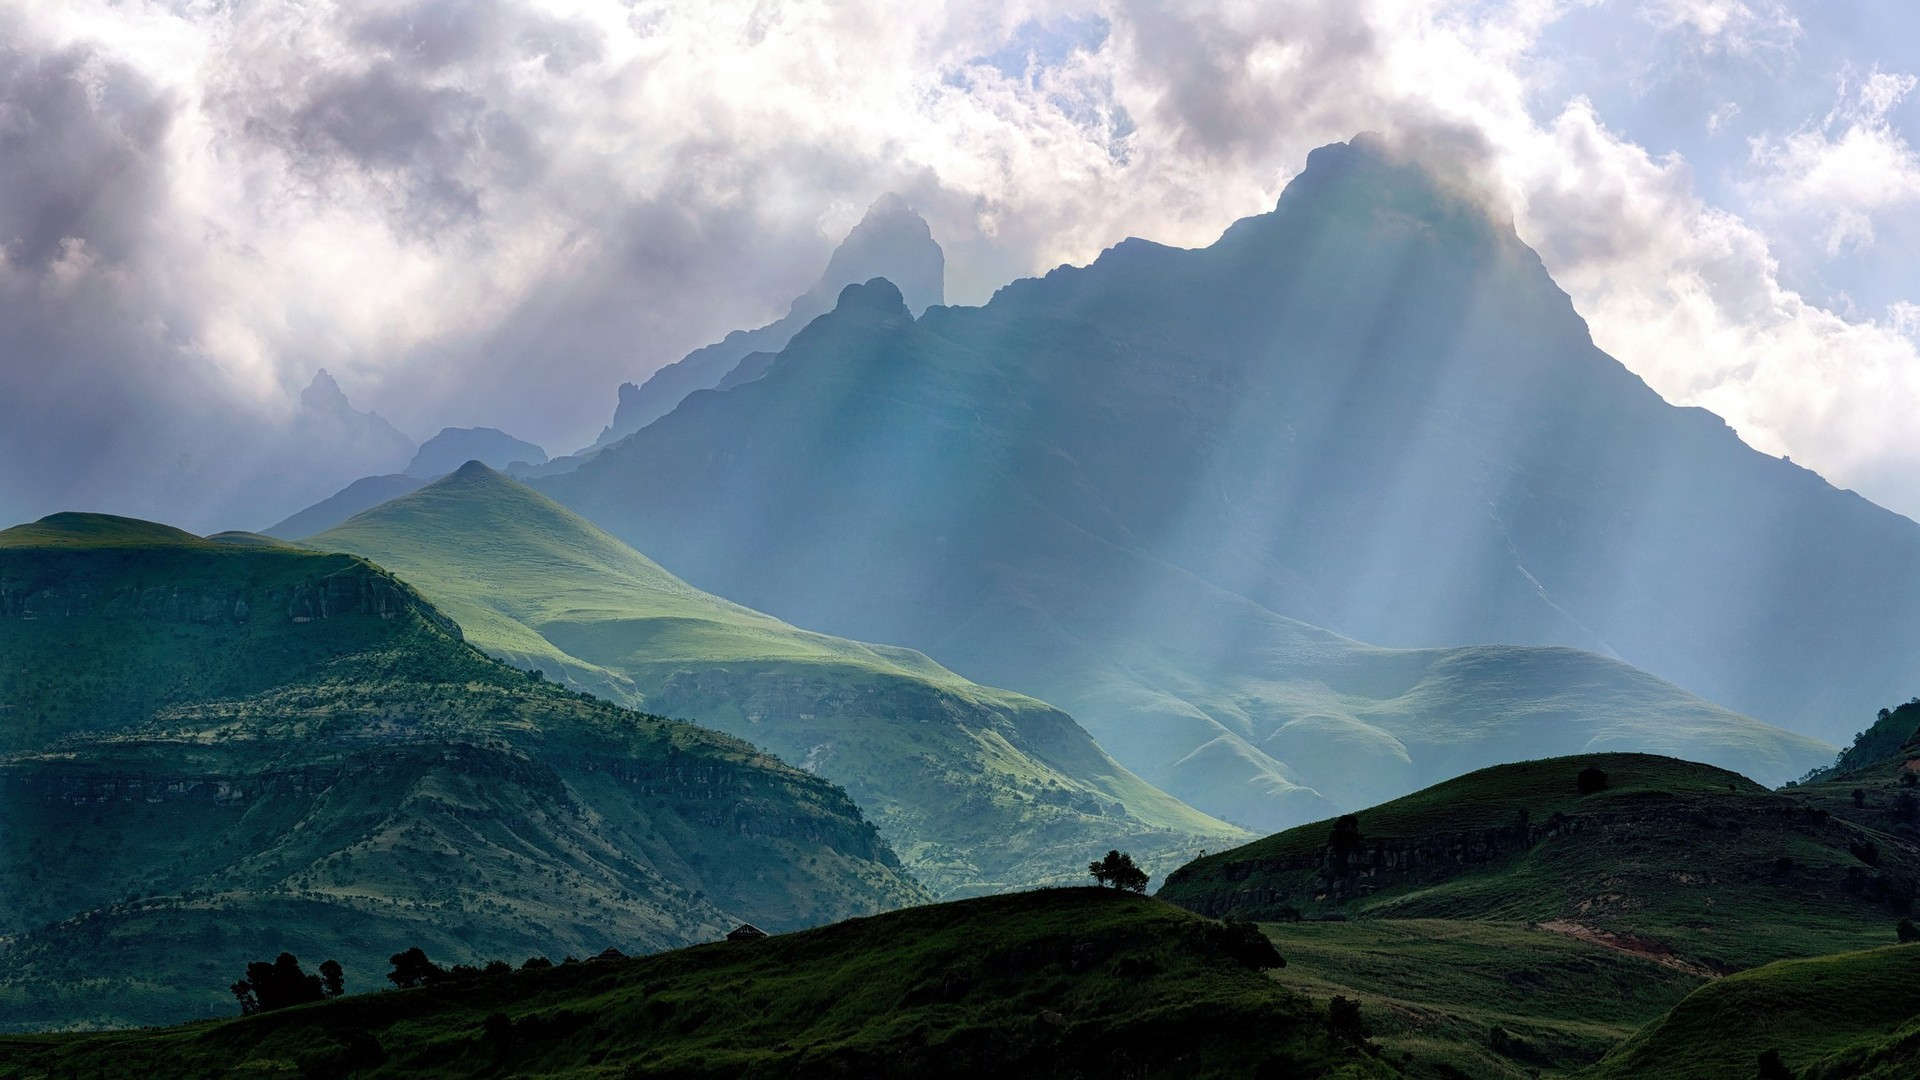 Free Download Drakensberg Mountains Tallest In South Africa